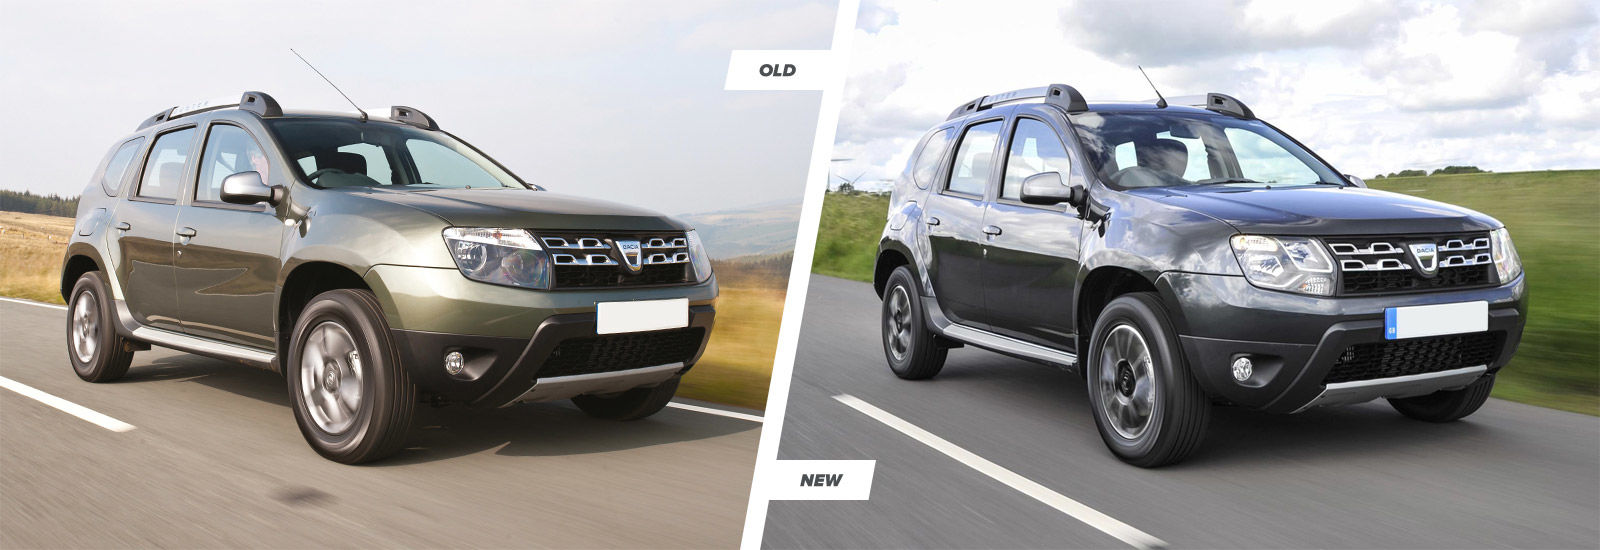 dacia duster 2016 facelift complete guide carwow. Black Bedroom Furniture Sets. Home Design Ideas